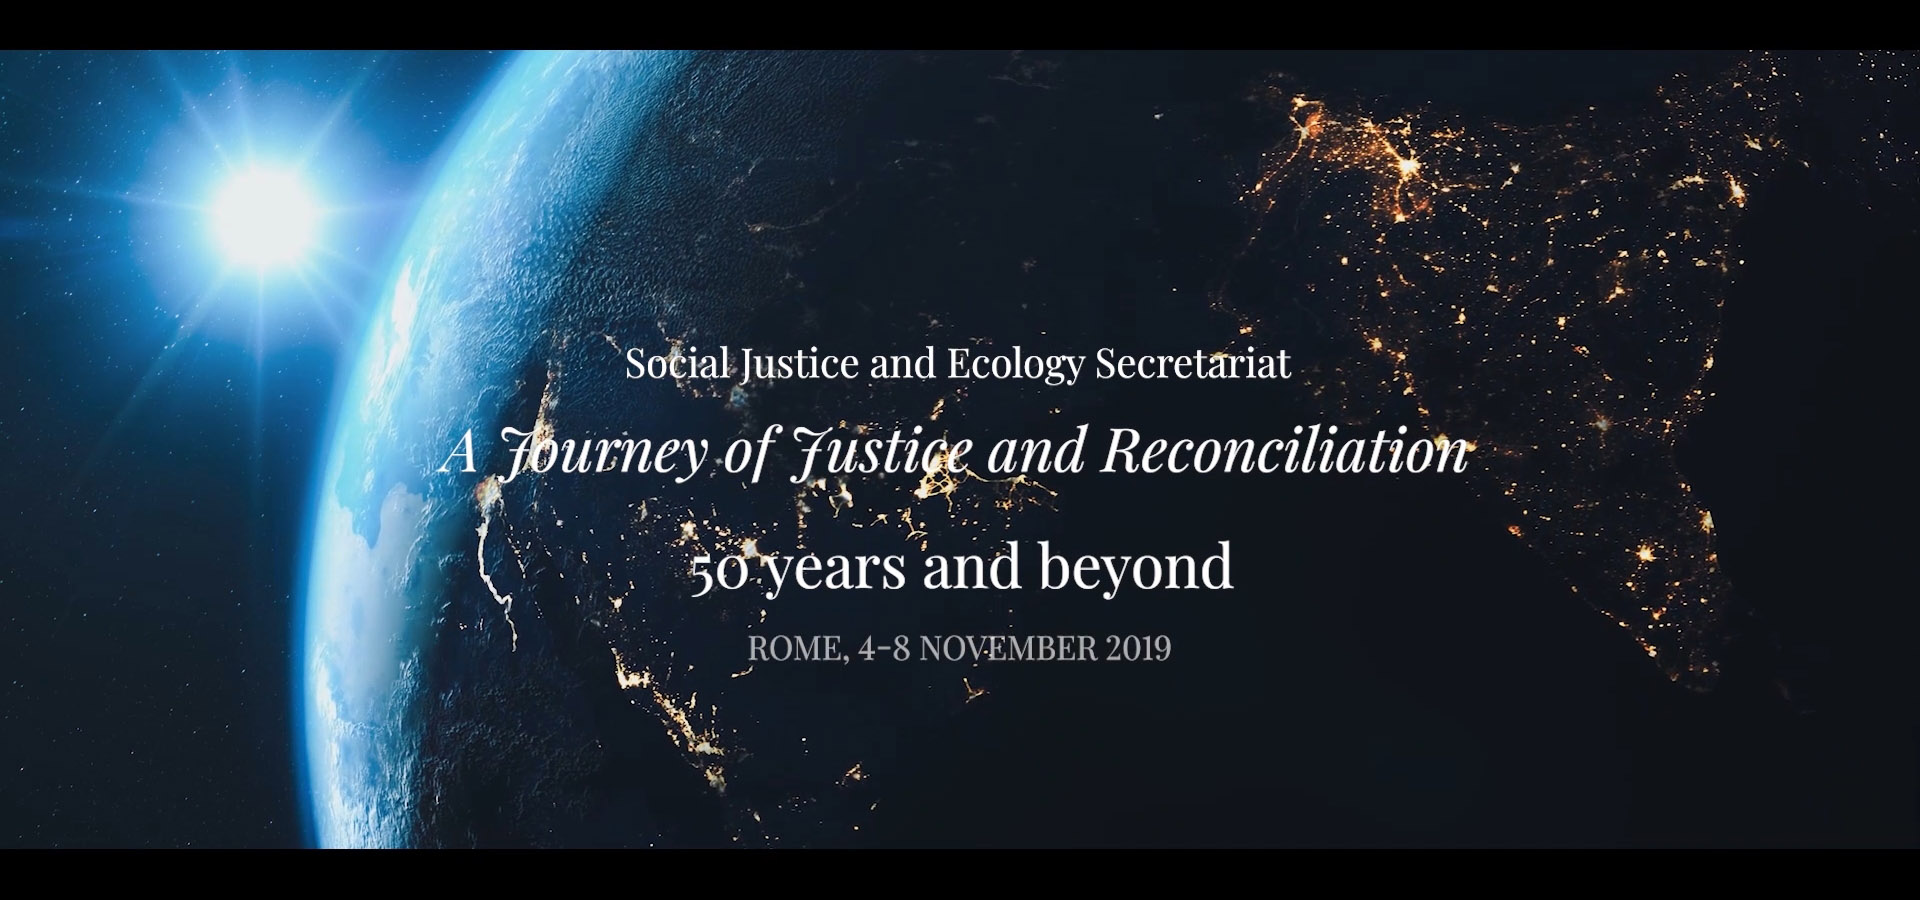 Echoes of the SJES Congress: A Journey of Justice and Reconciliation